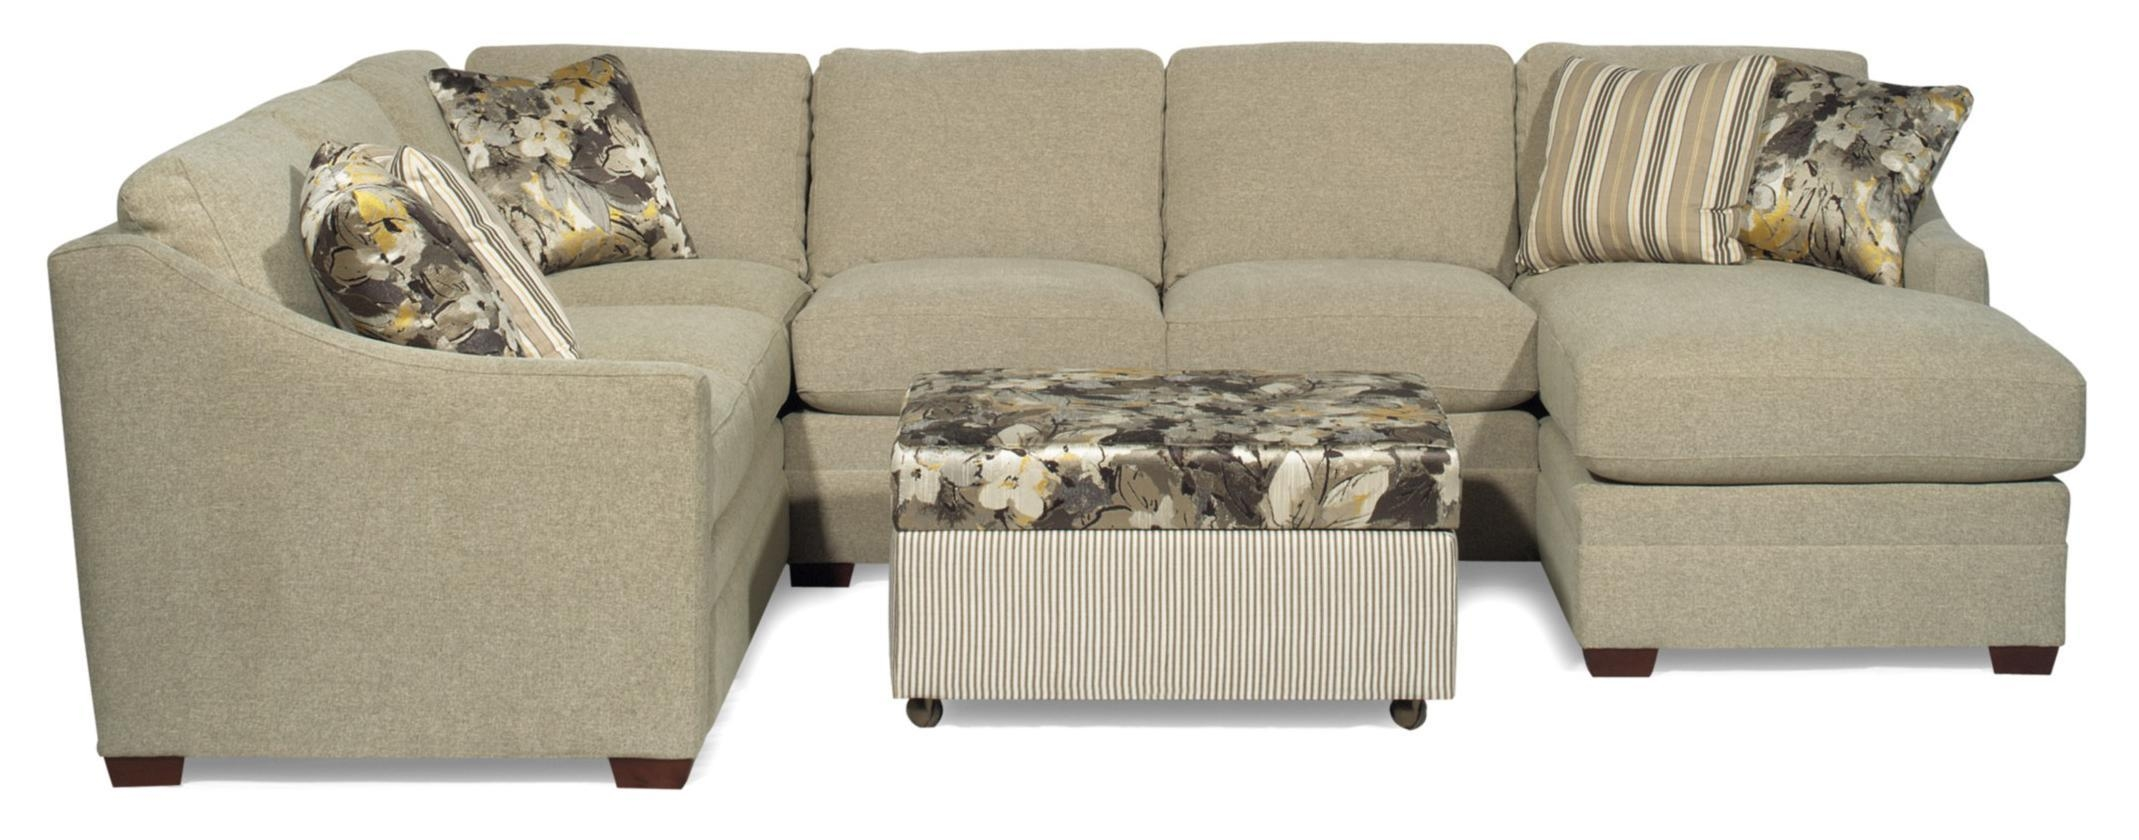 Small Craftmaster Sectional Sofa: 10 Cool Craftmaster Sectional With Craftmaster Sectional (Image 14 of 15)